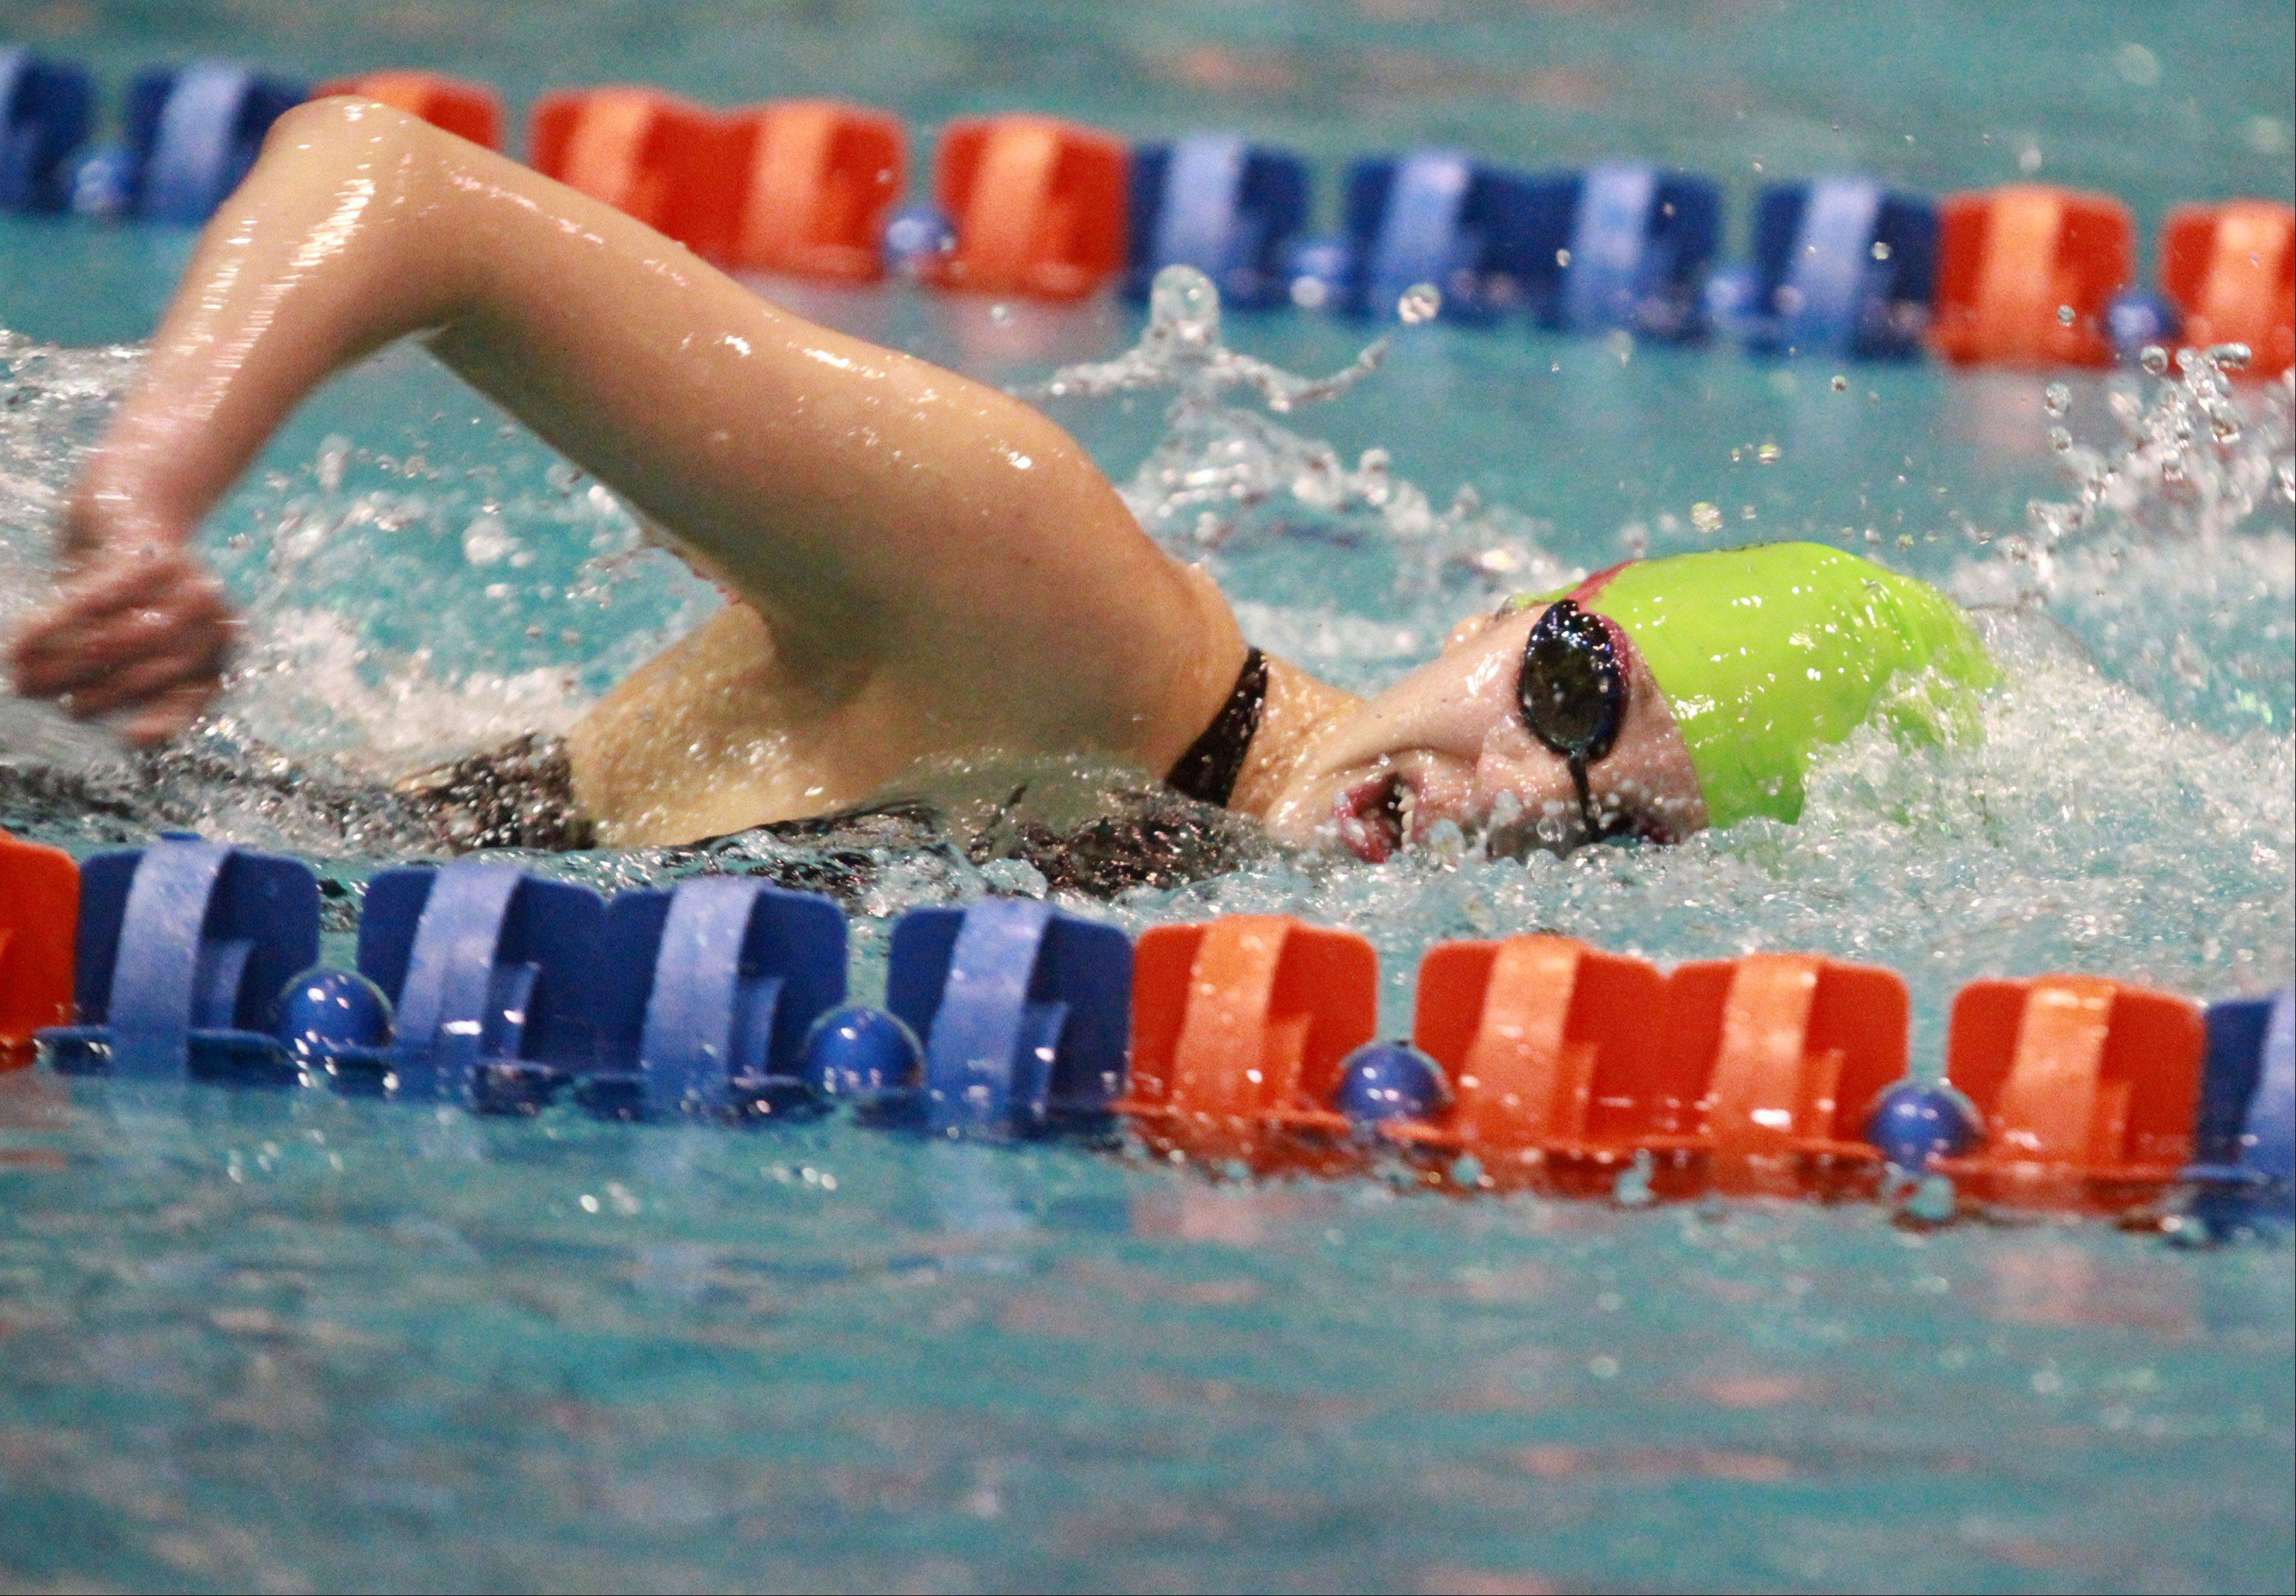 George LeClaire/gleclaire@dailyherald.comSt. Charles East's Mary Snyder placed eleventh in the 200-yard freestyle at the IHSA state championships in Evanston on Saturday.